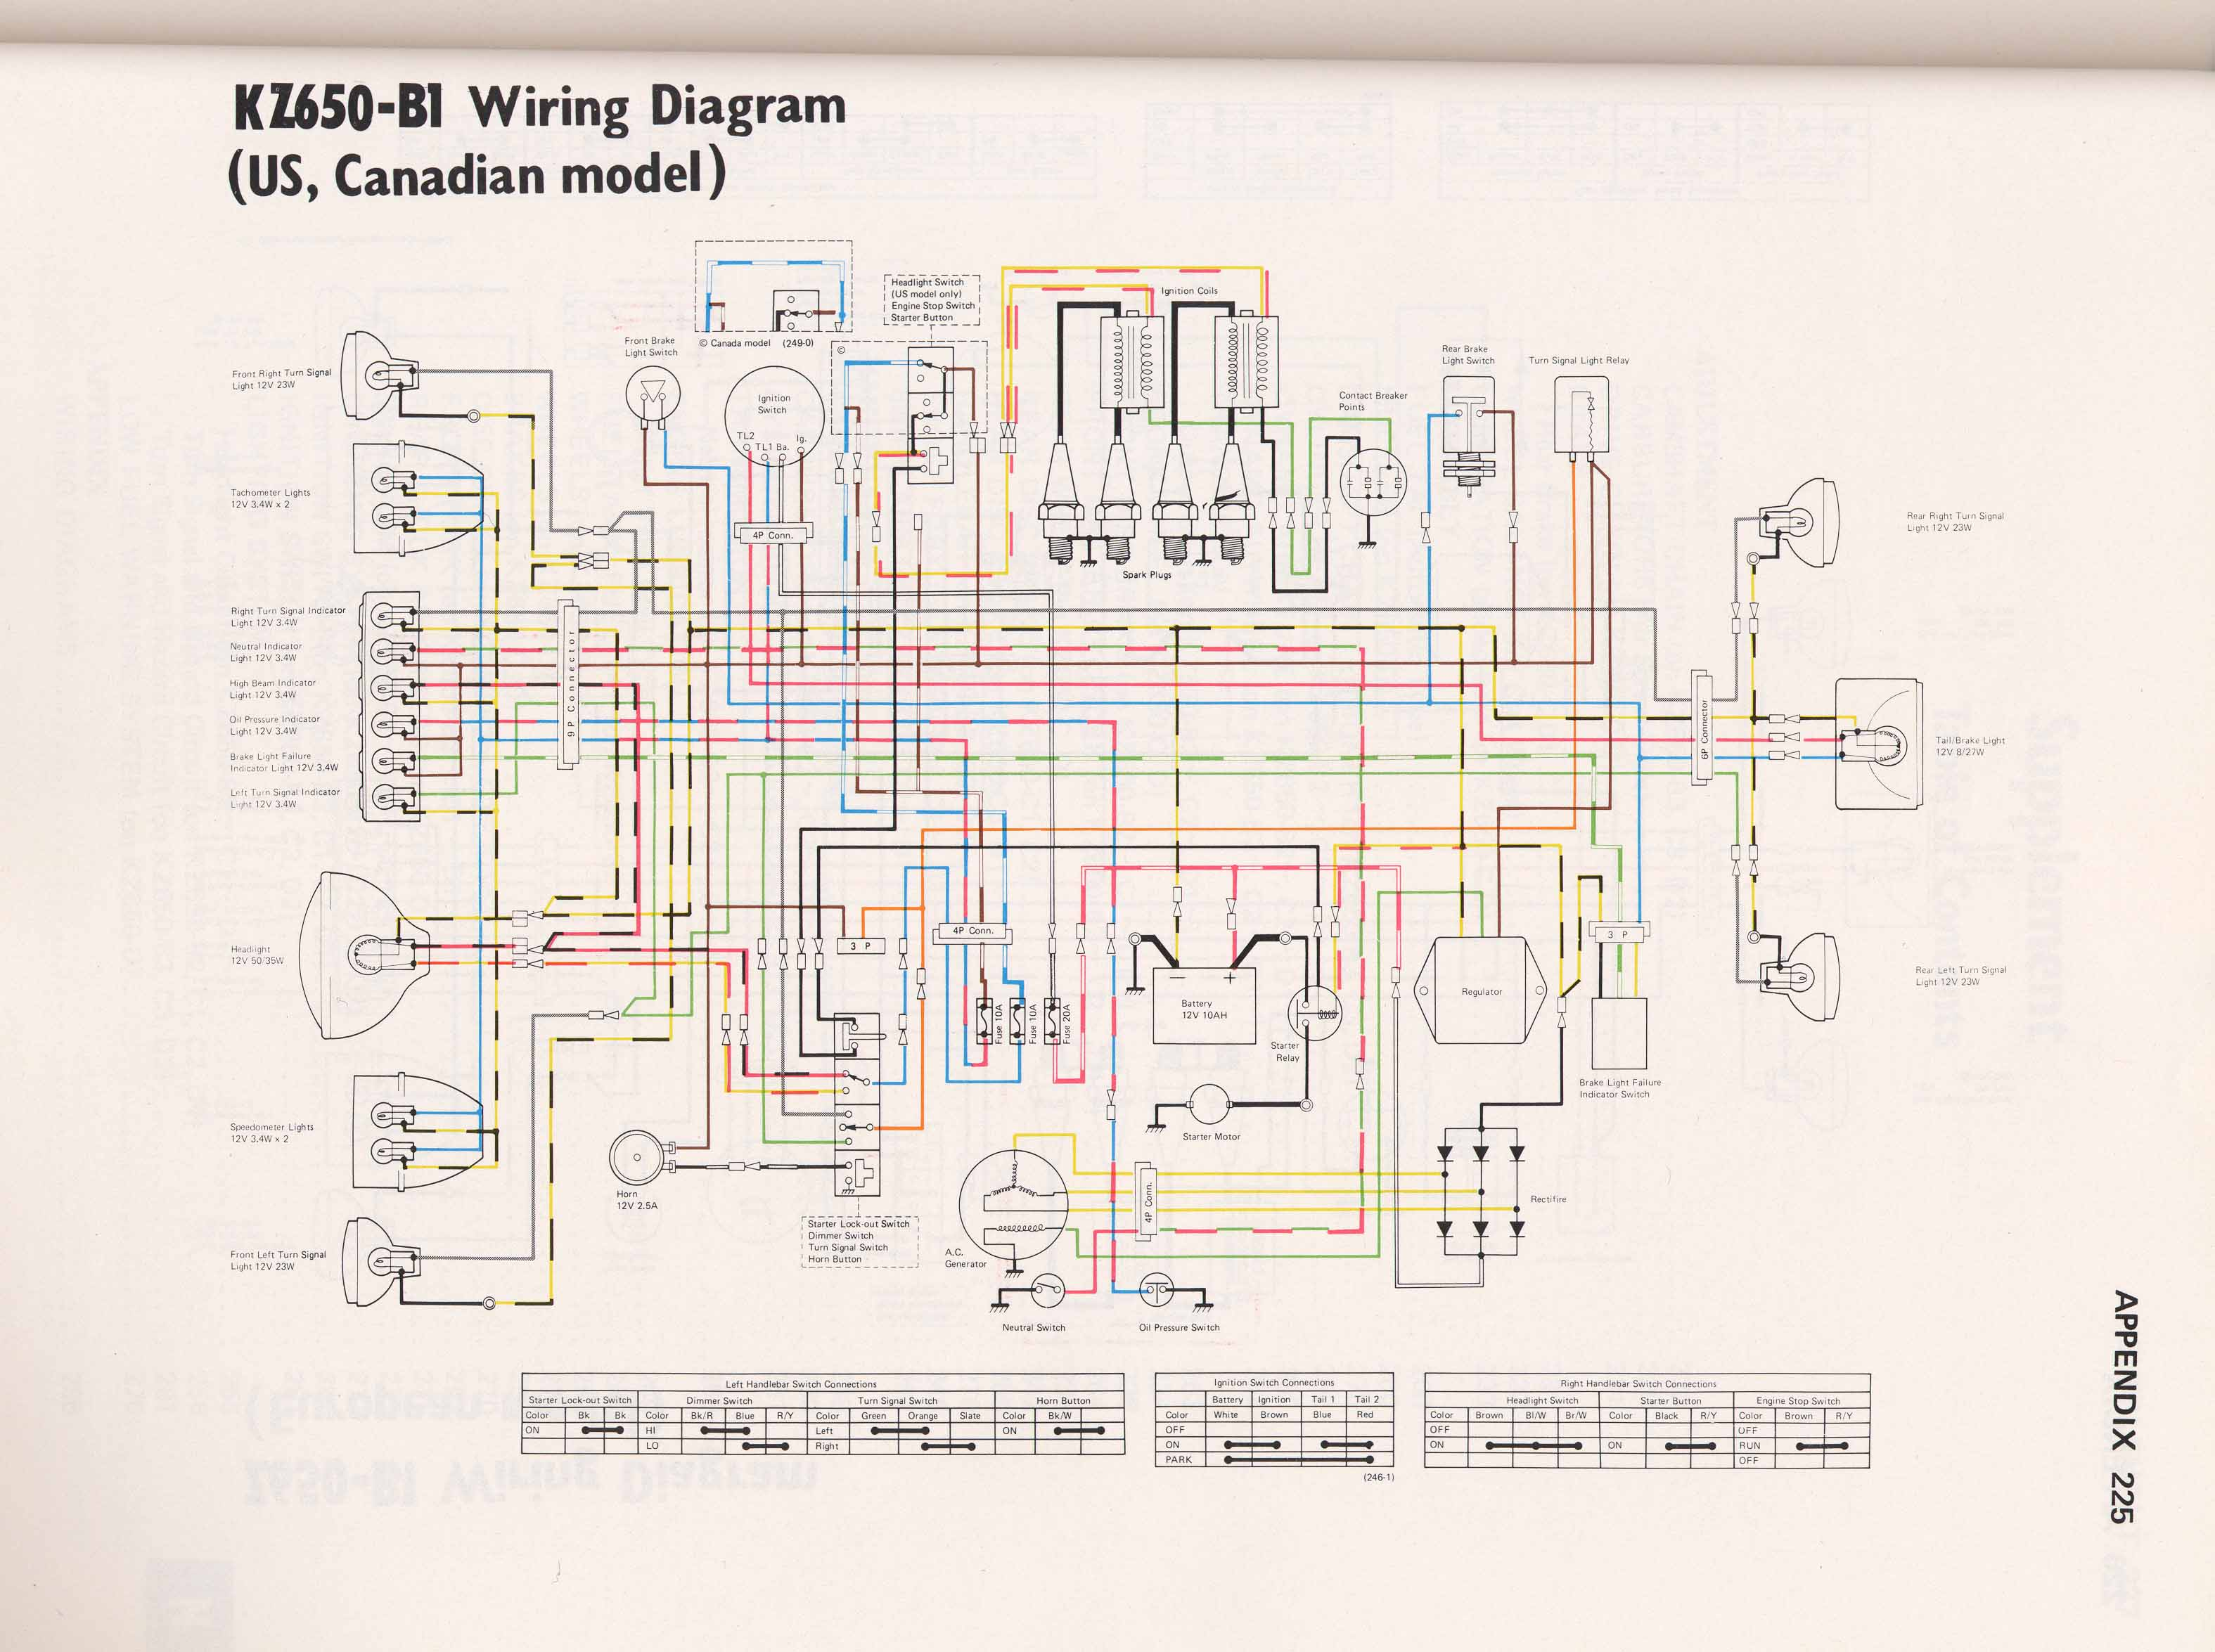 1979 Corvette Starter Wiring Diagram Diagrams New Era Of U2022kz650 Info